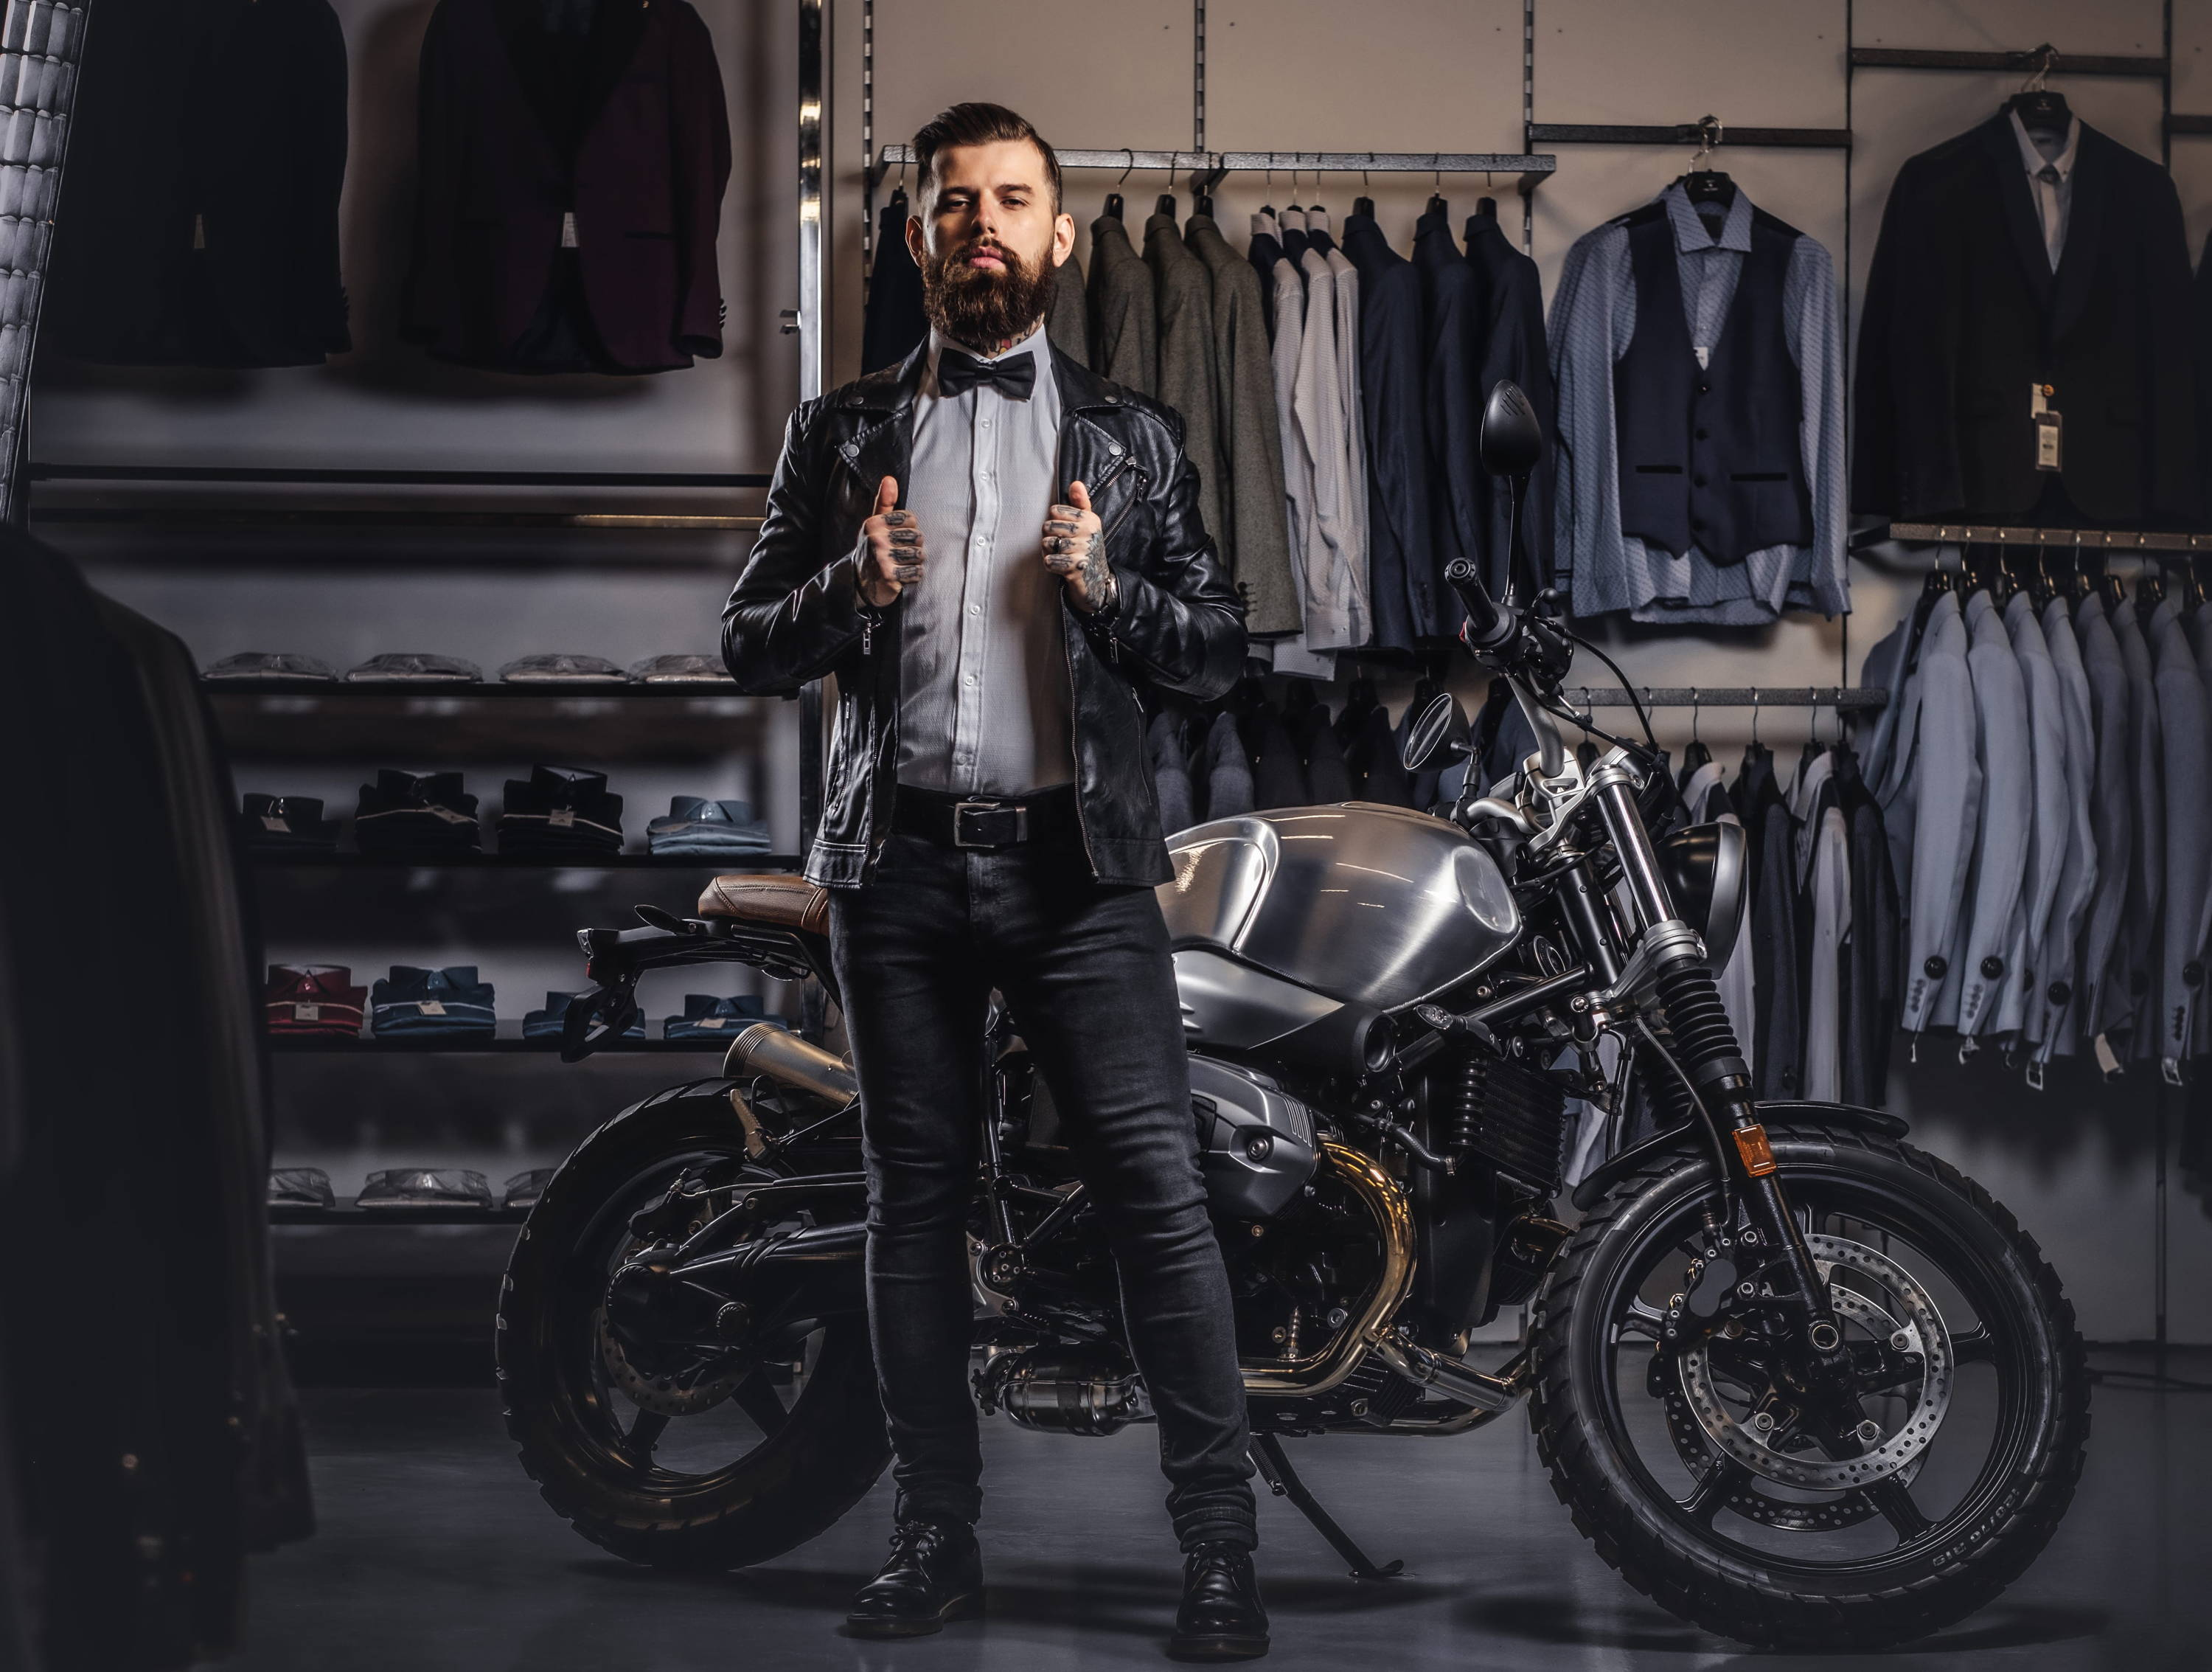 Rugged rebel mens style, man poses in front of motorbike in leather jacket and bowtie